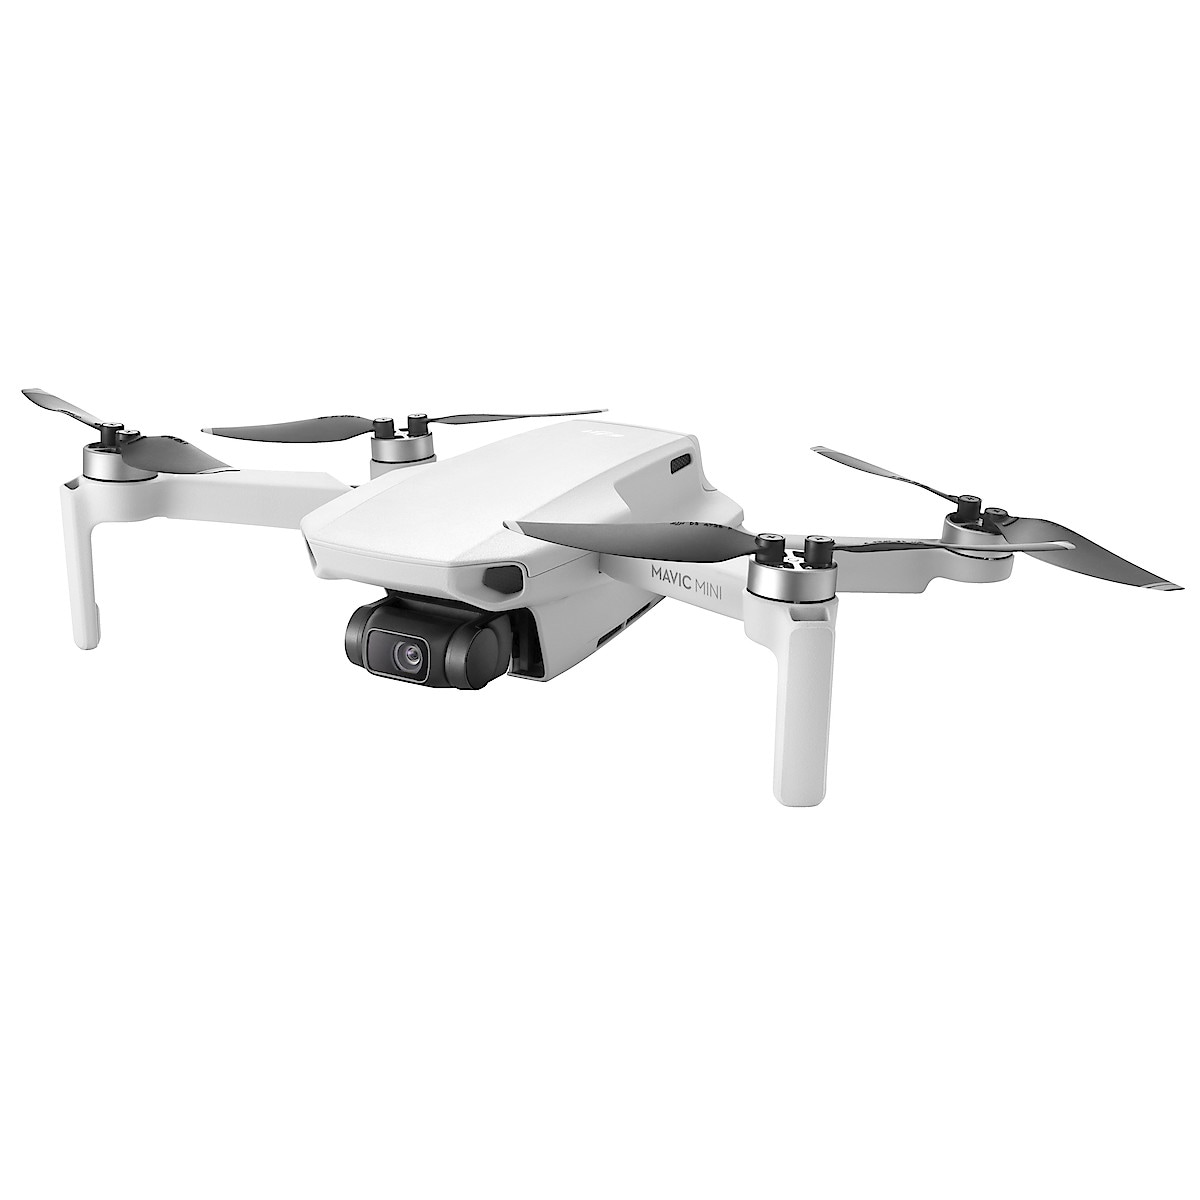 DJI Mavic Mini Fly More drönare paket